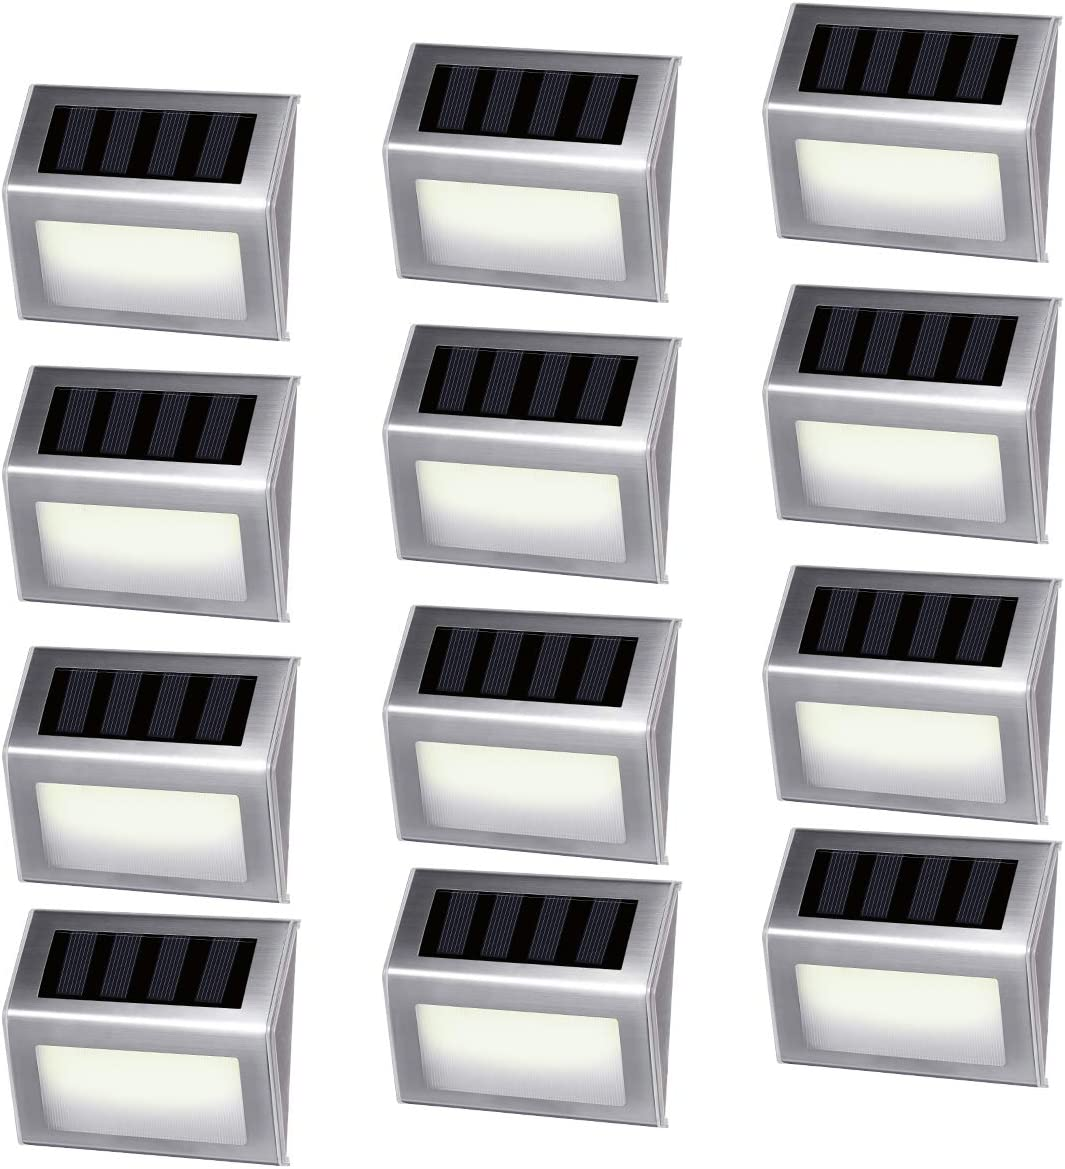 12 Pack iThird Solar Powered Step Lights 6 LED Solar Deck Lights Outdoor Warm White Stainless Steel Decoration for Stair Fence Path Auto ON Off Weatherproof Upgrade